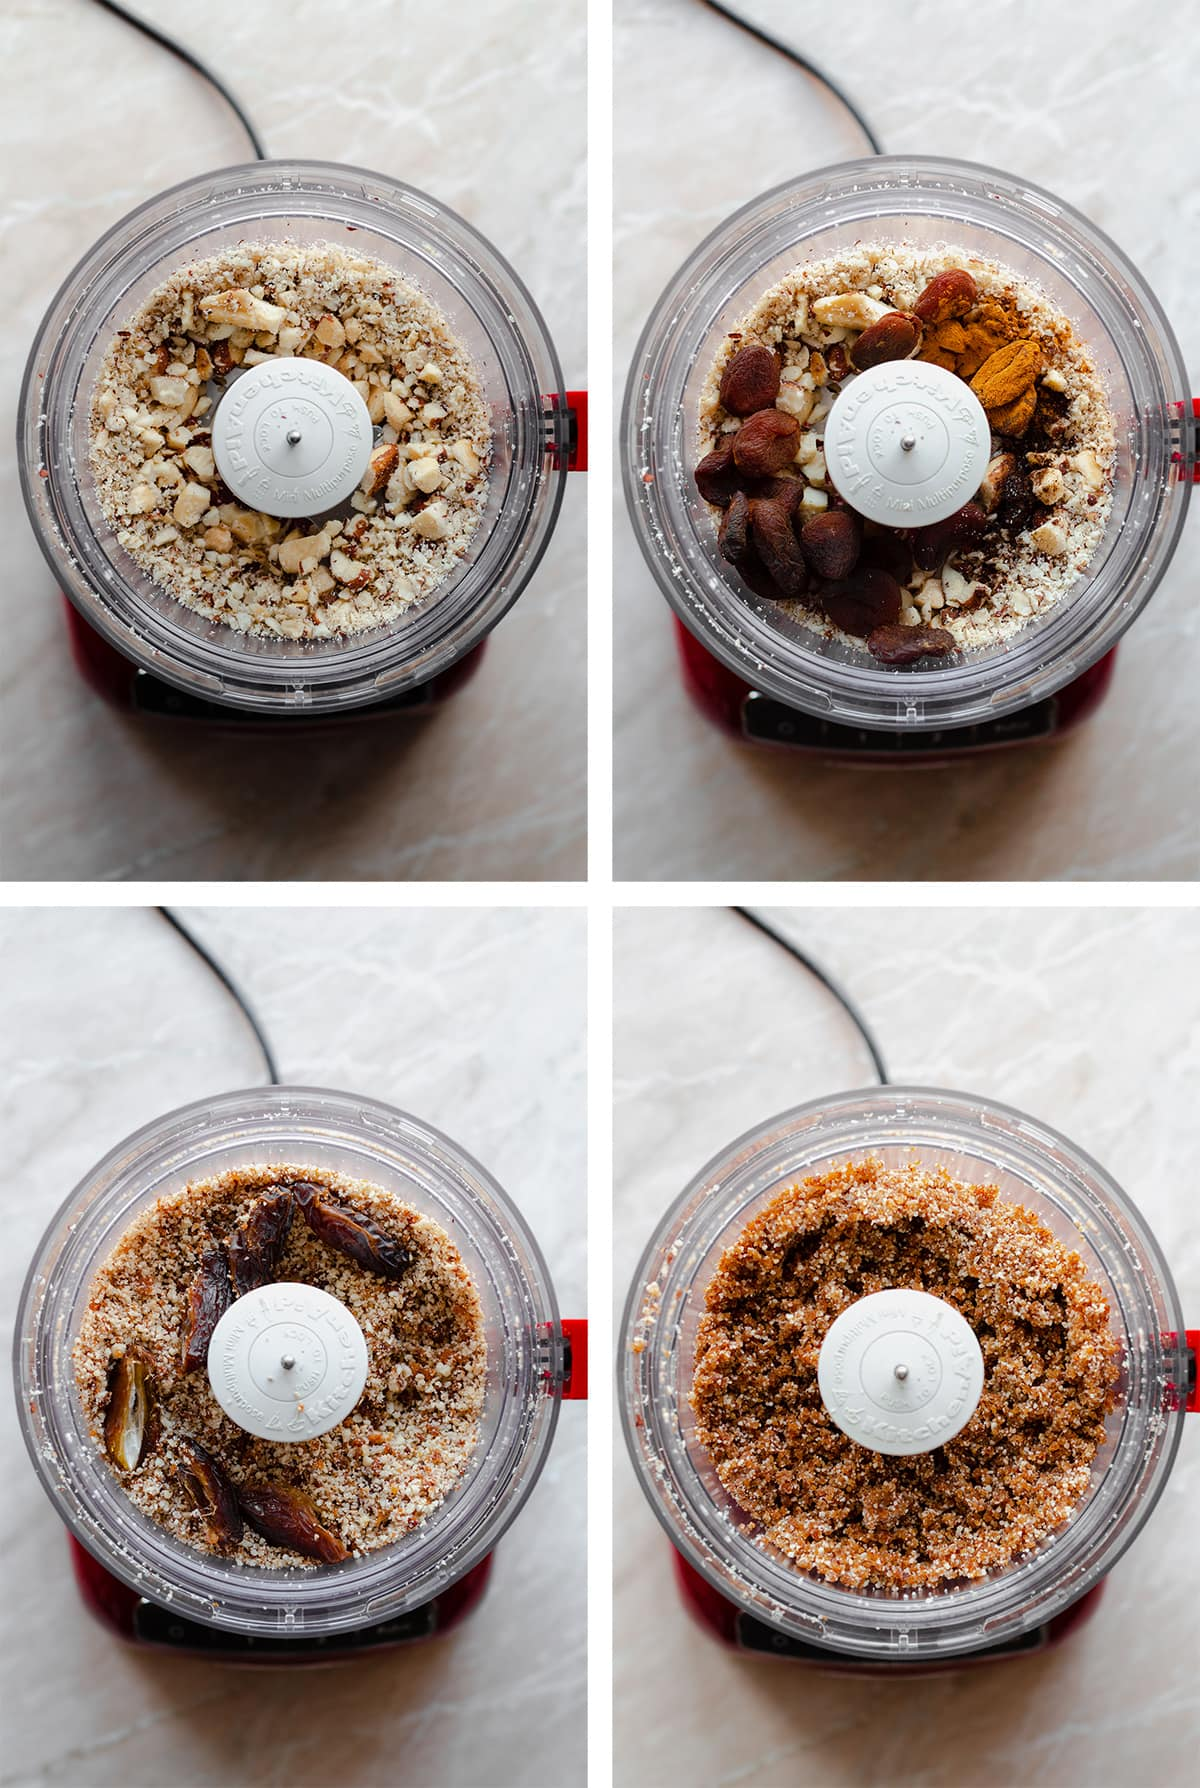 Four process shots of the food processor blending the ingredients for the Apricot Brazil Nut energy balls.